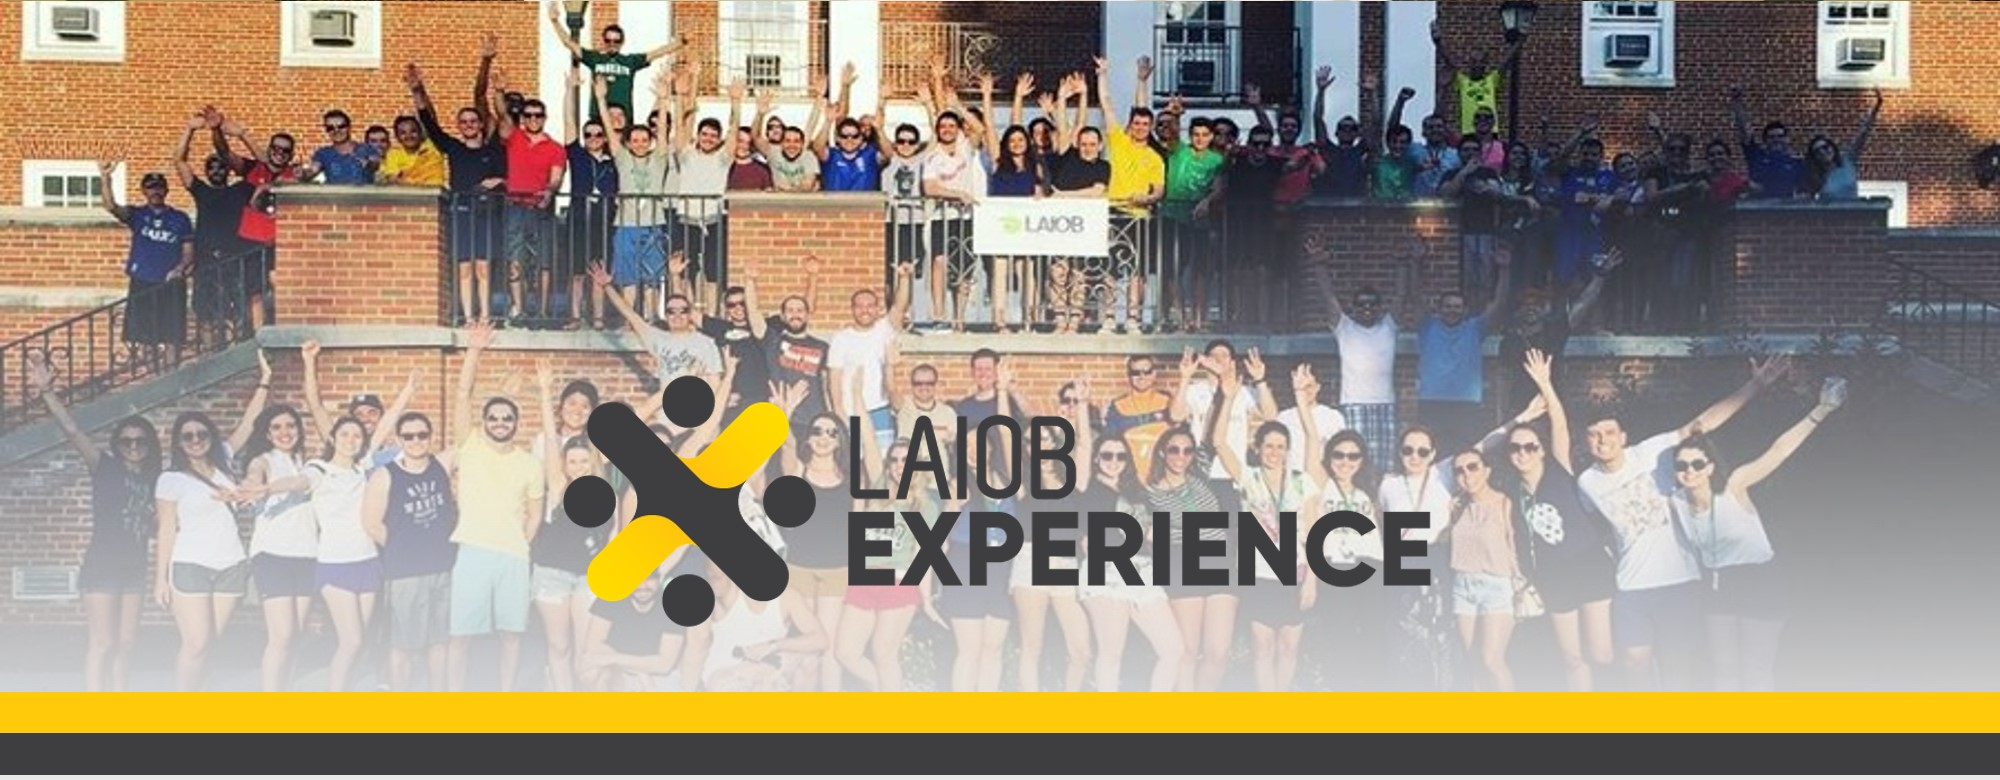 LAIOB Experience